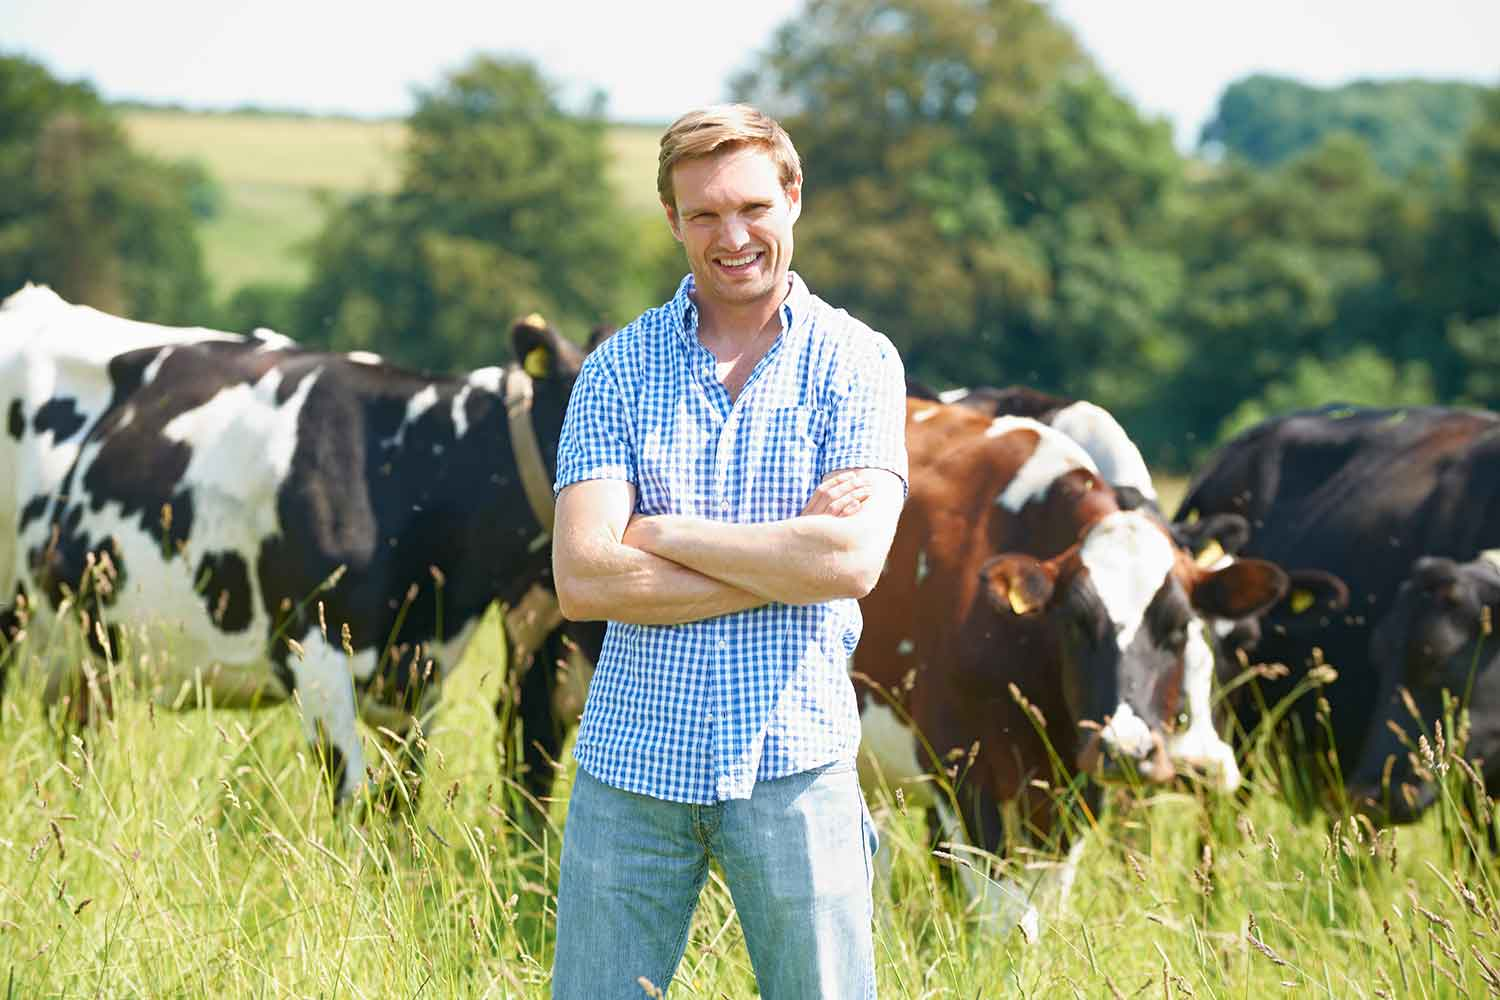 man in blue shirt and jeans standing in front of cows in pasture